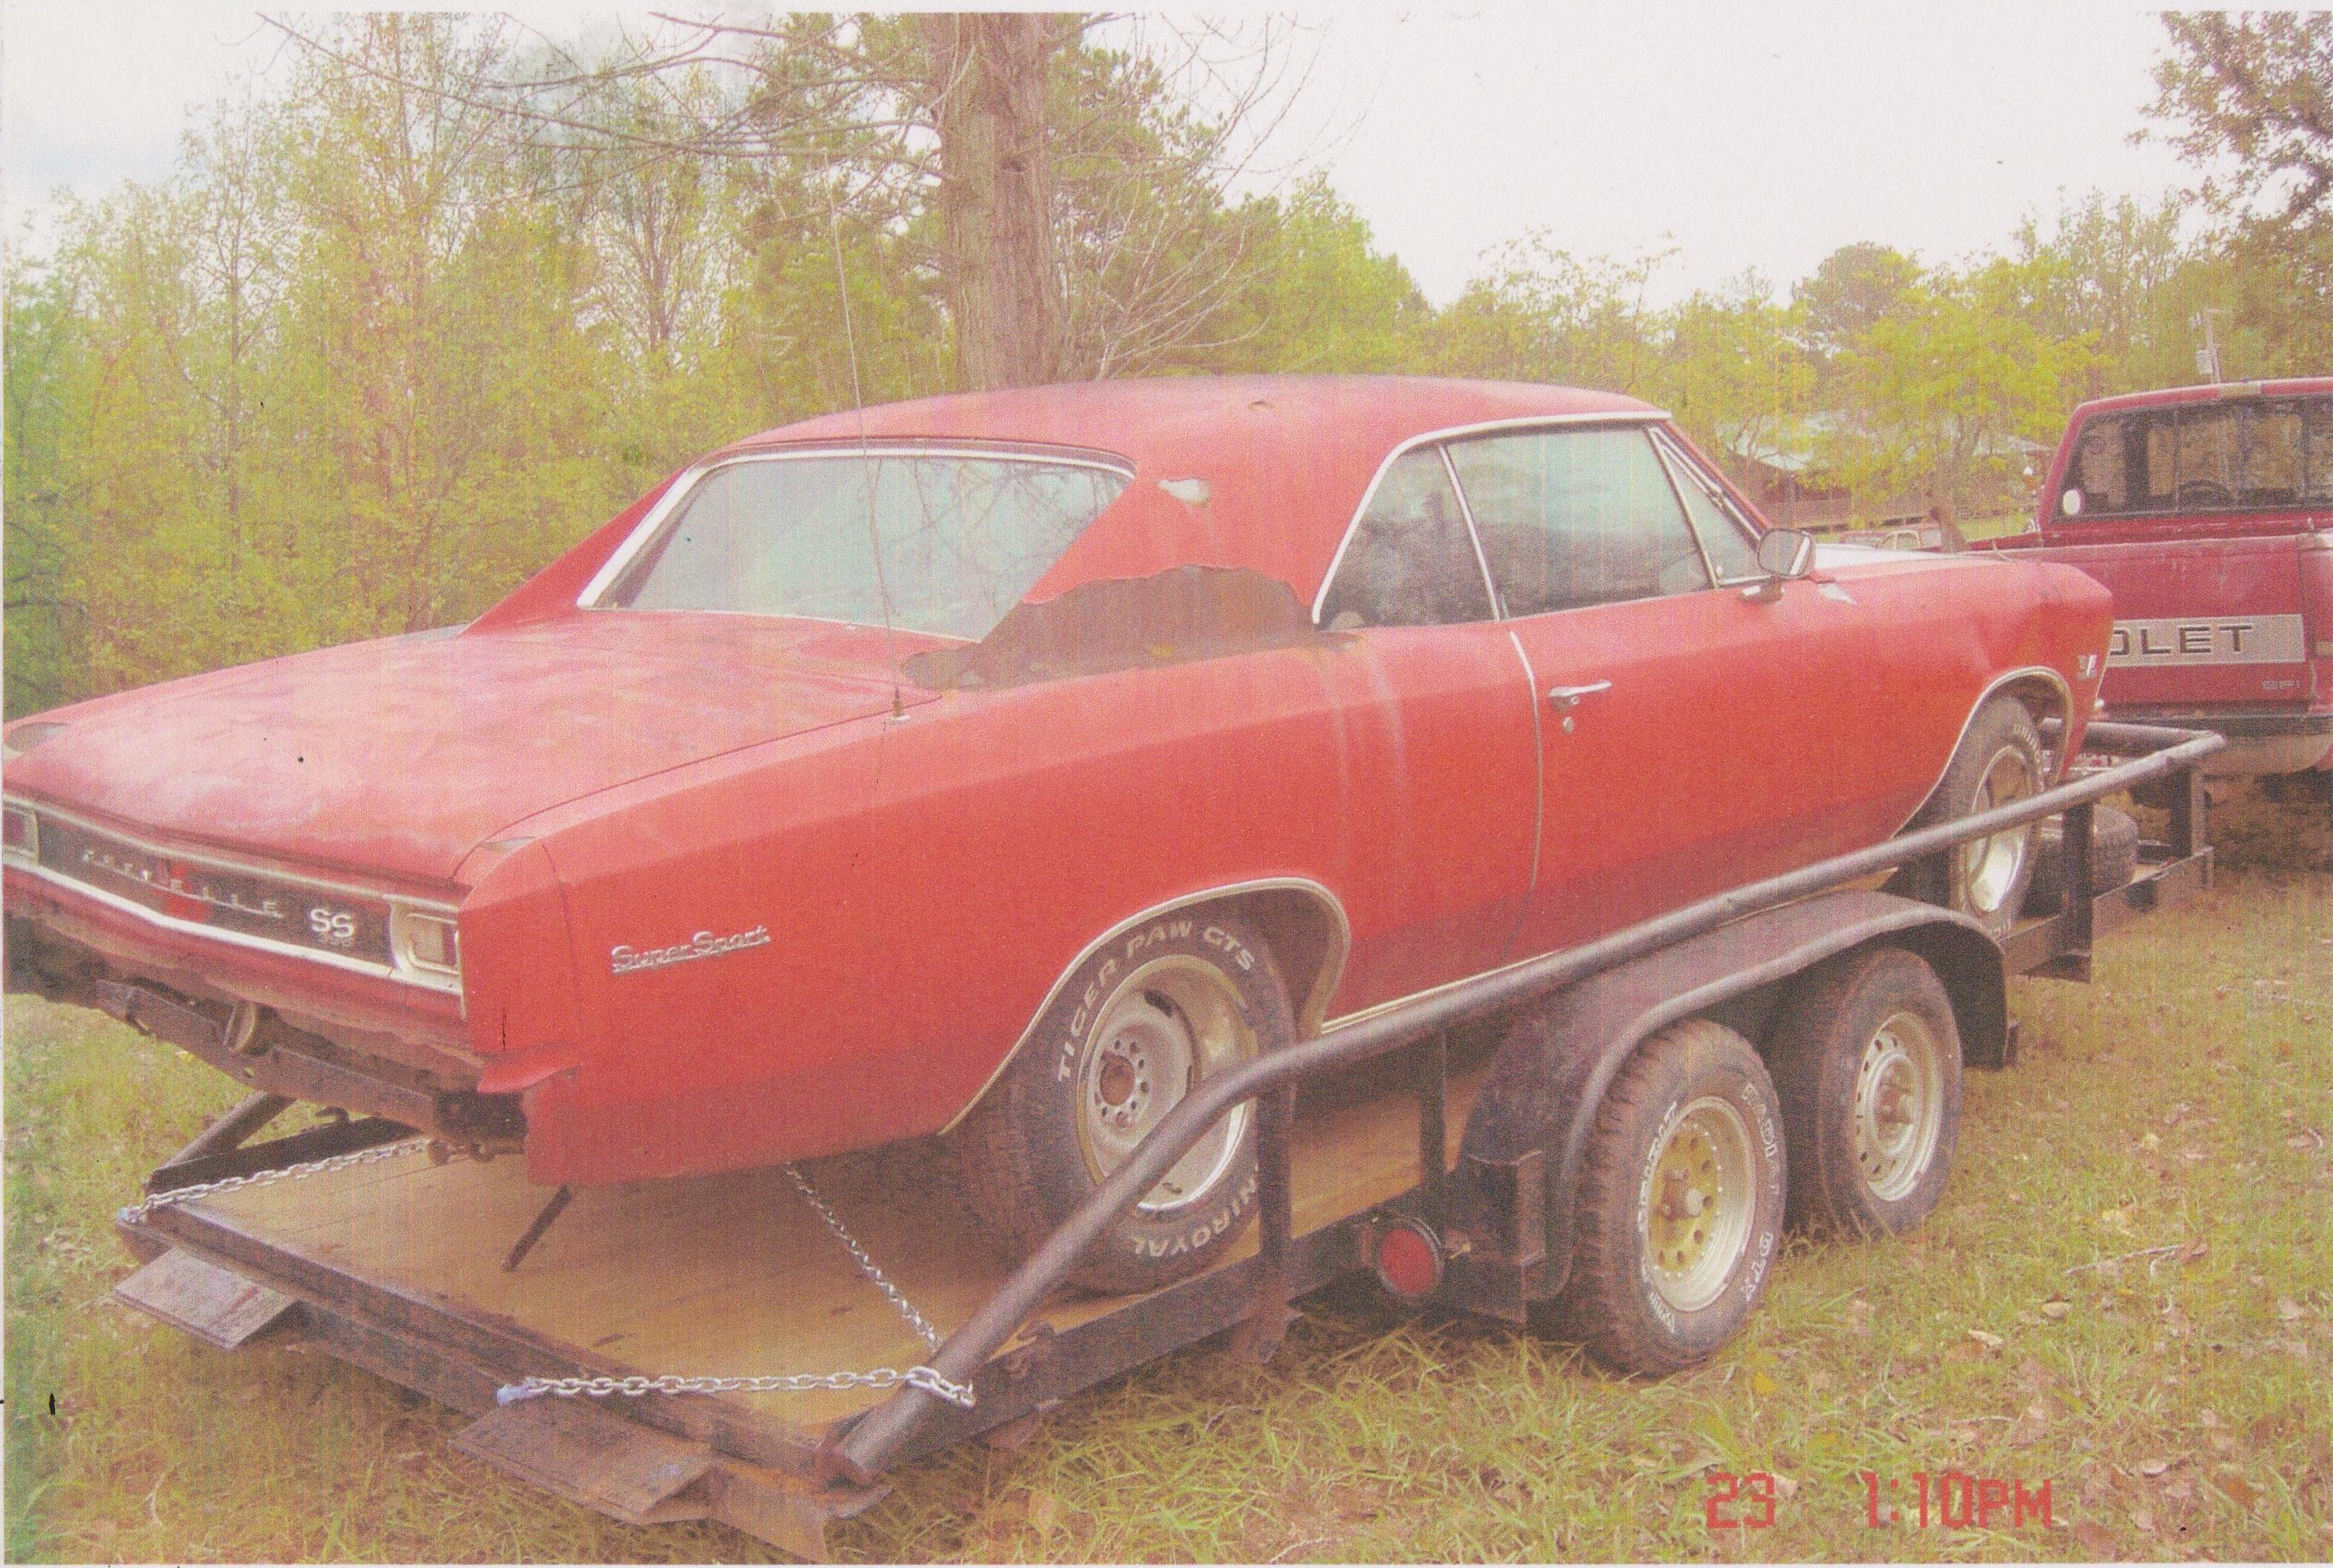 Click image for larger version  Name:66 CHEVELLE 002.jpg Views:56 Size:1.18 MB ID:83410